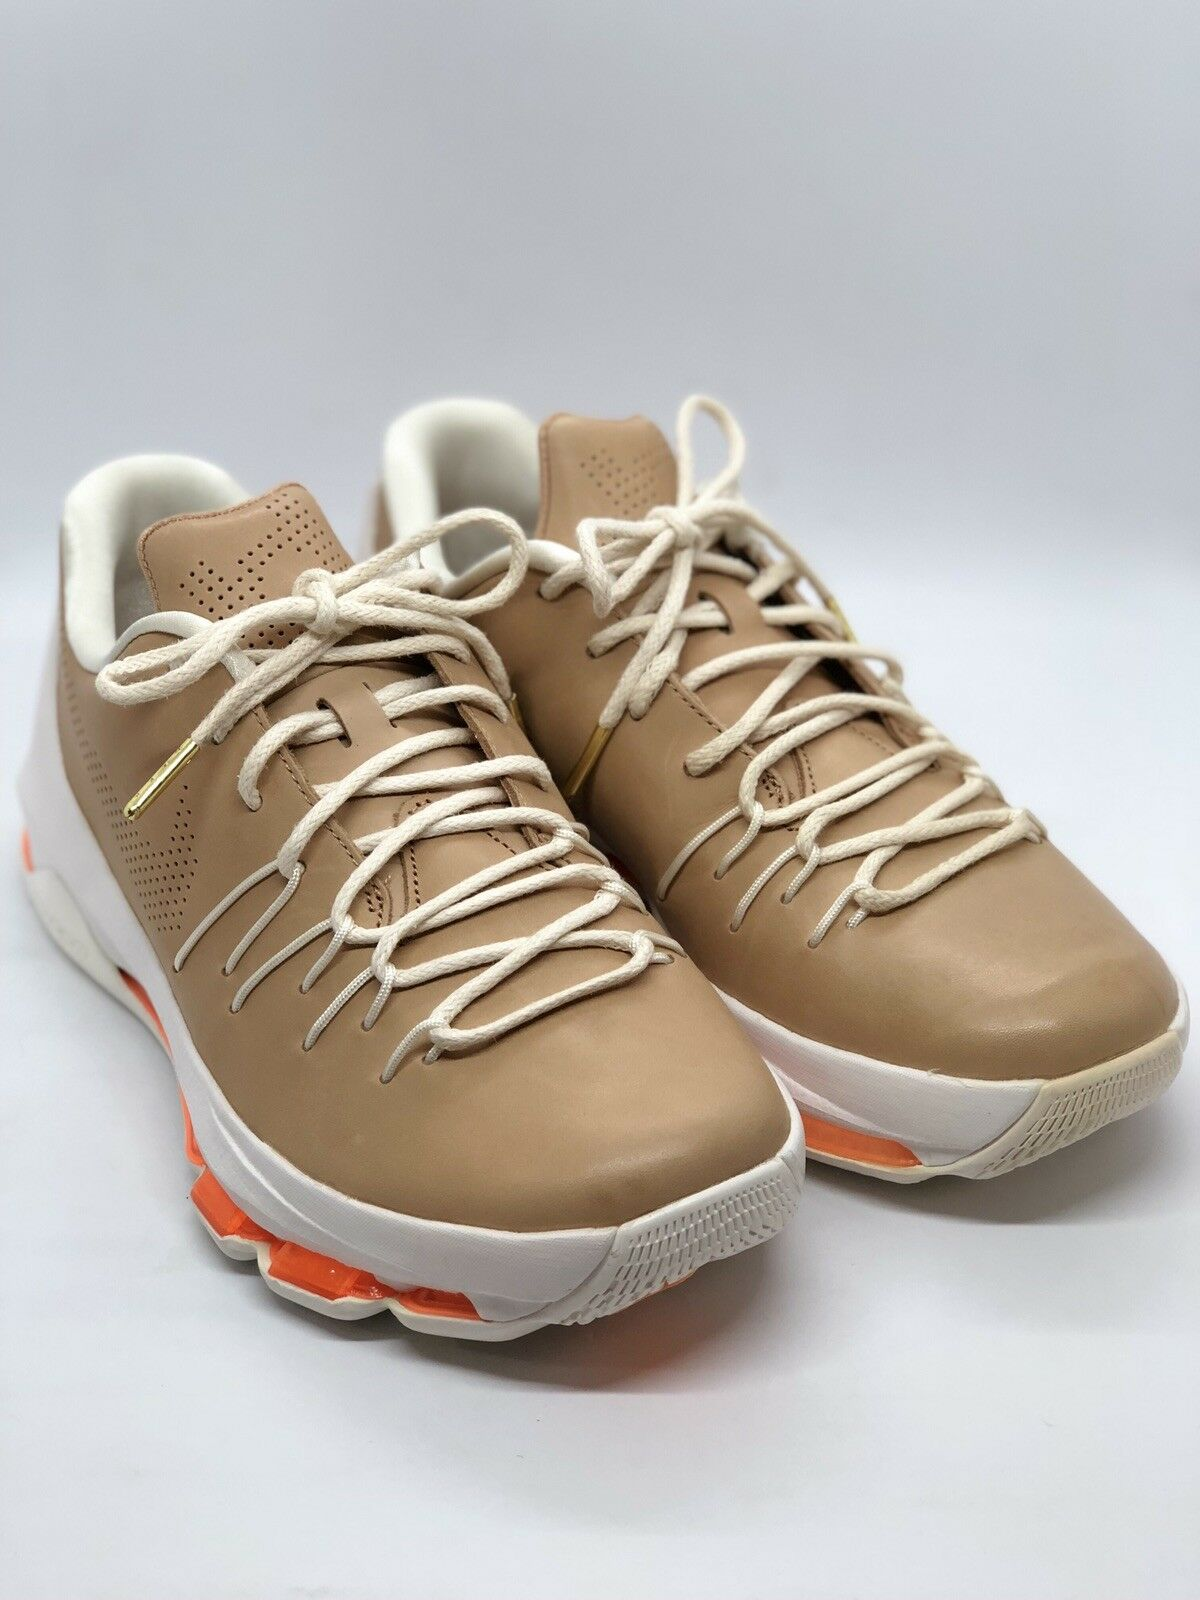 "NIKE KD 8 EXT 806393-200 Tan Sail orange Men's Size 8 ""VACHETTA TAN"""